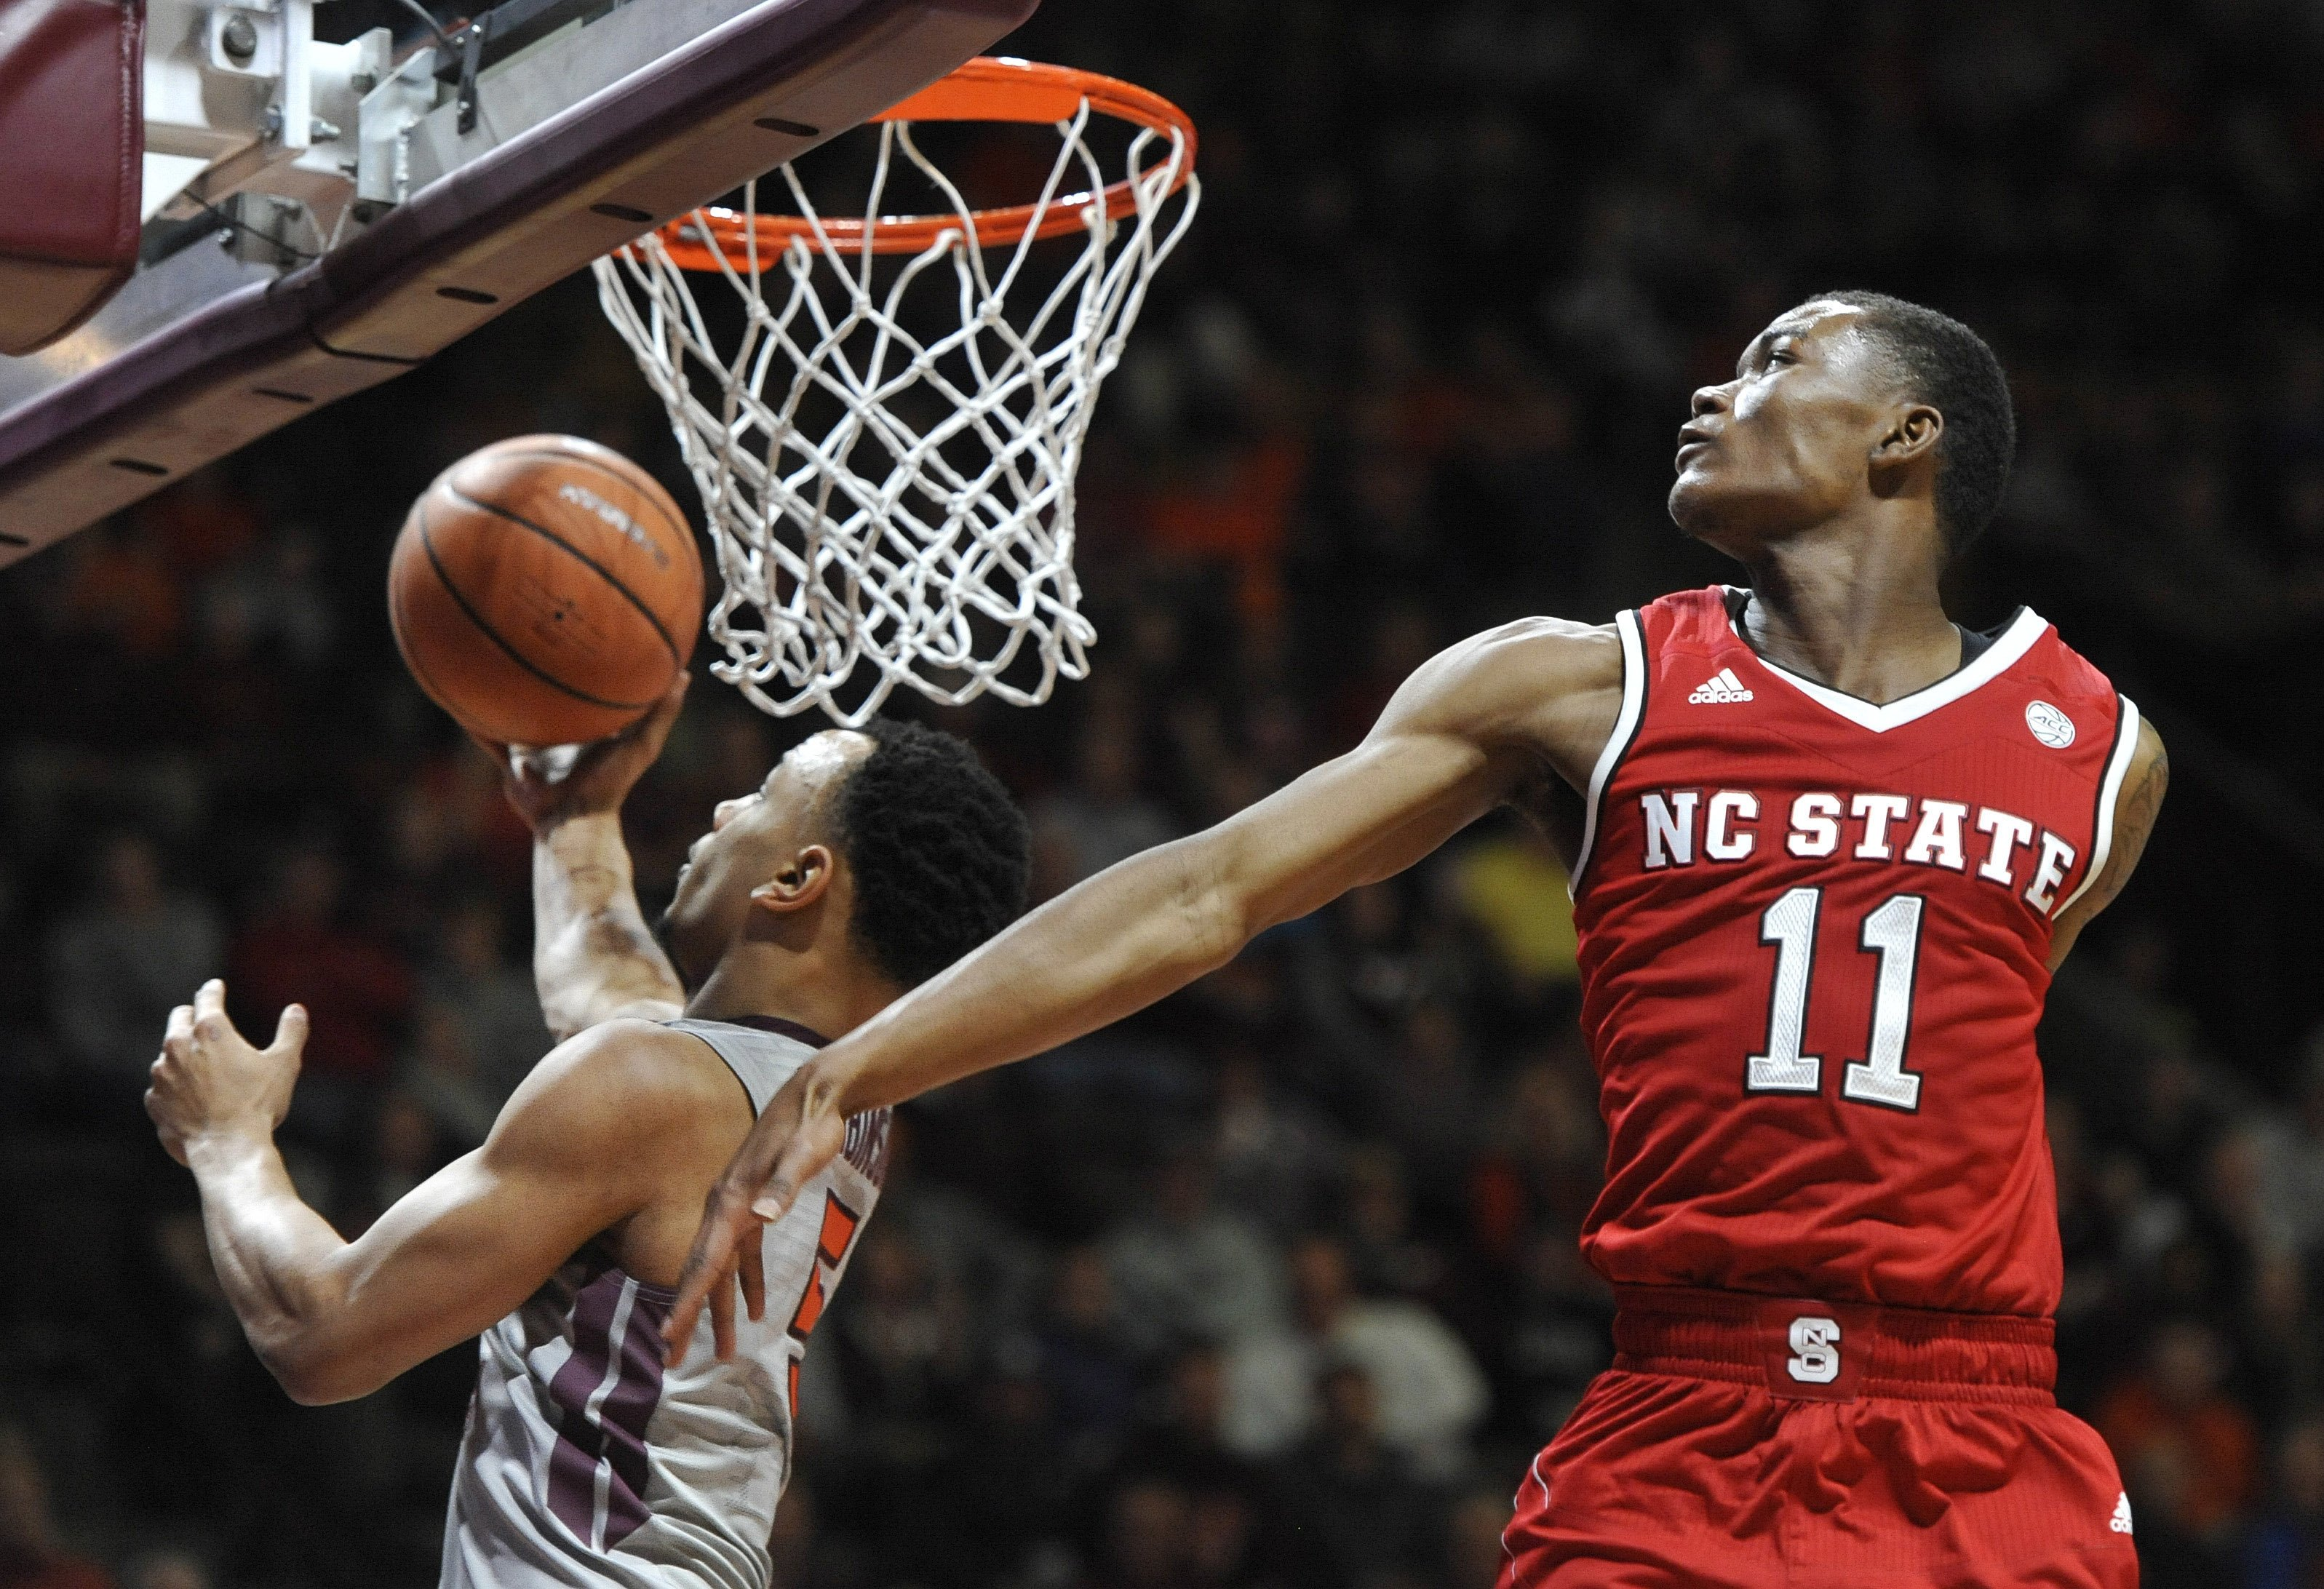 NC State Wolfpack falls to Virginia Tech, 85-75